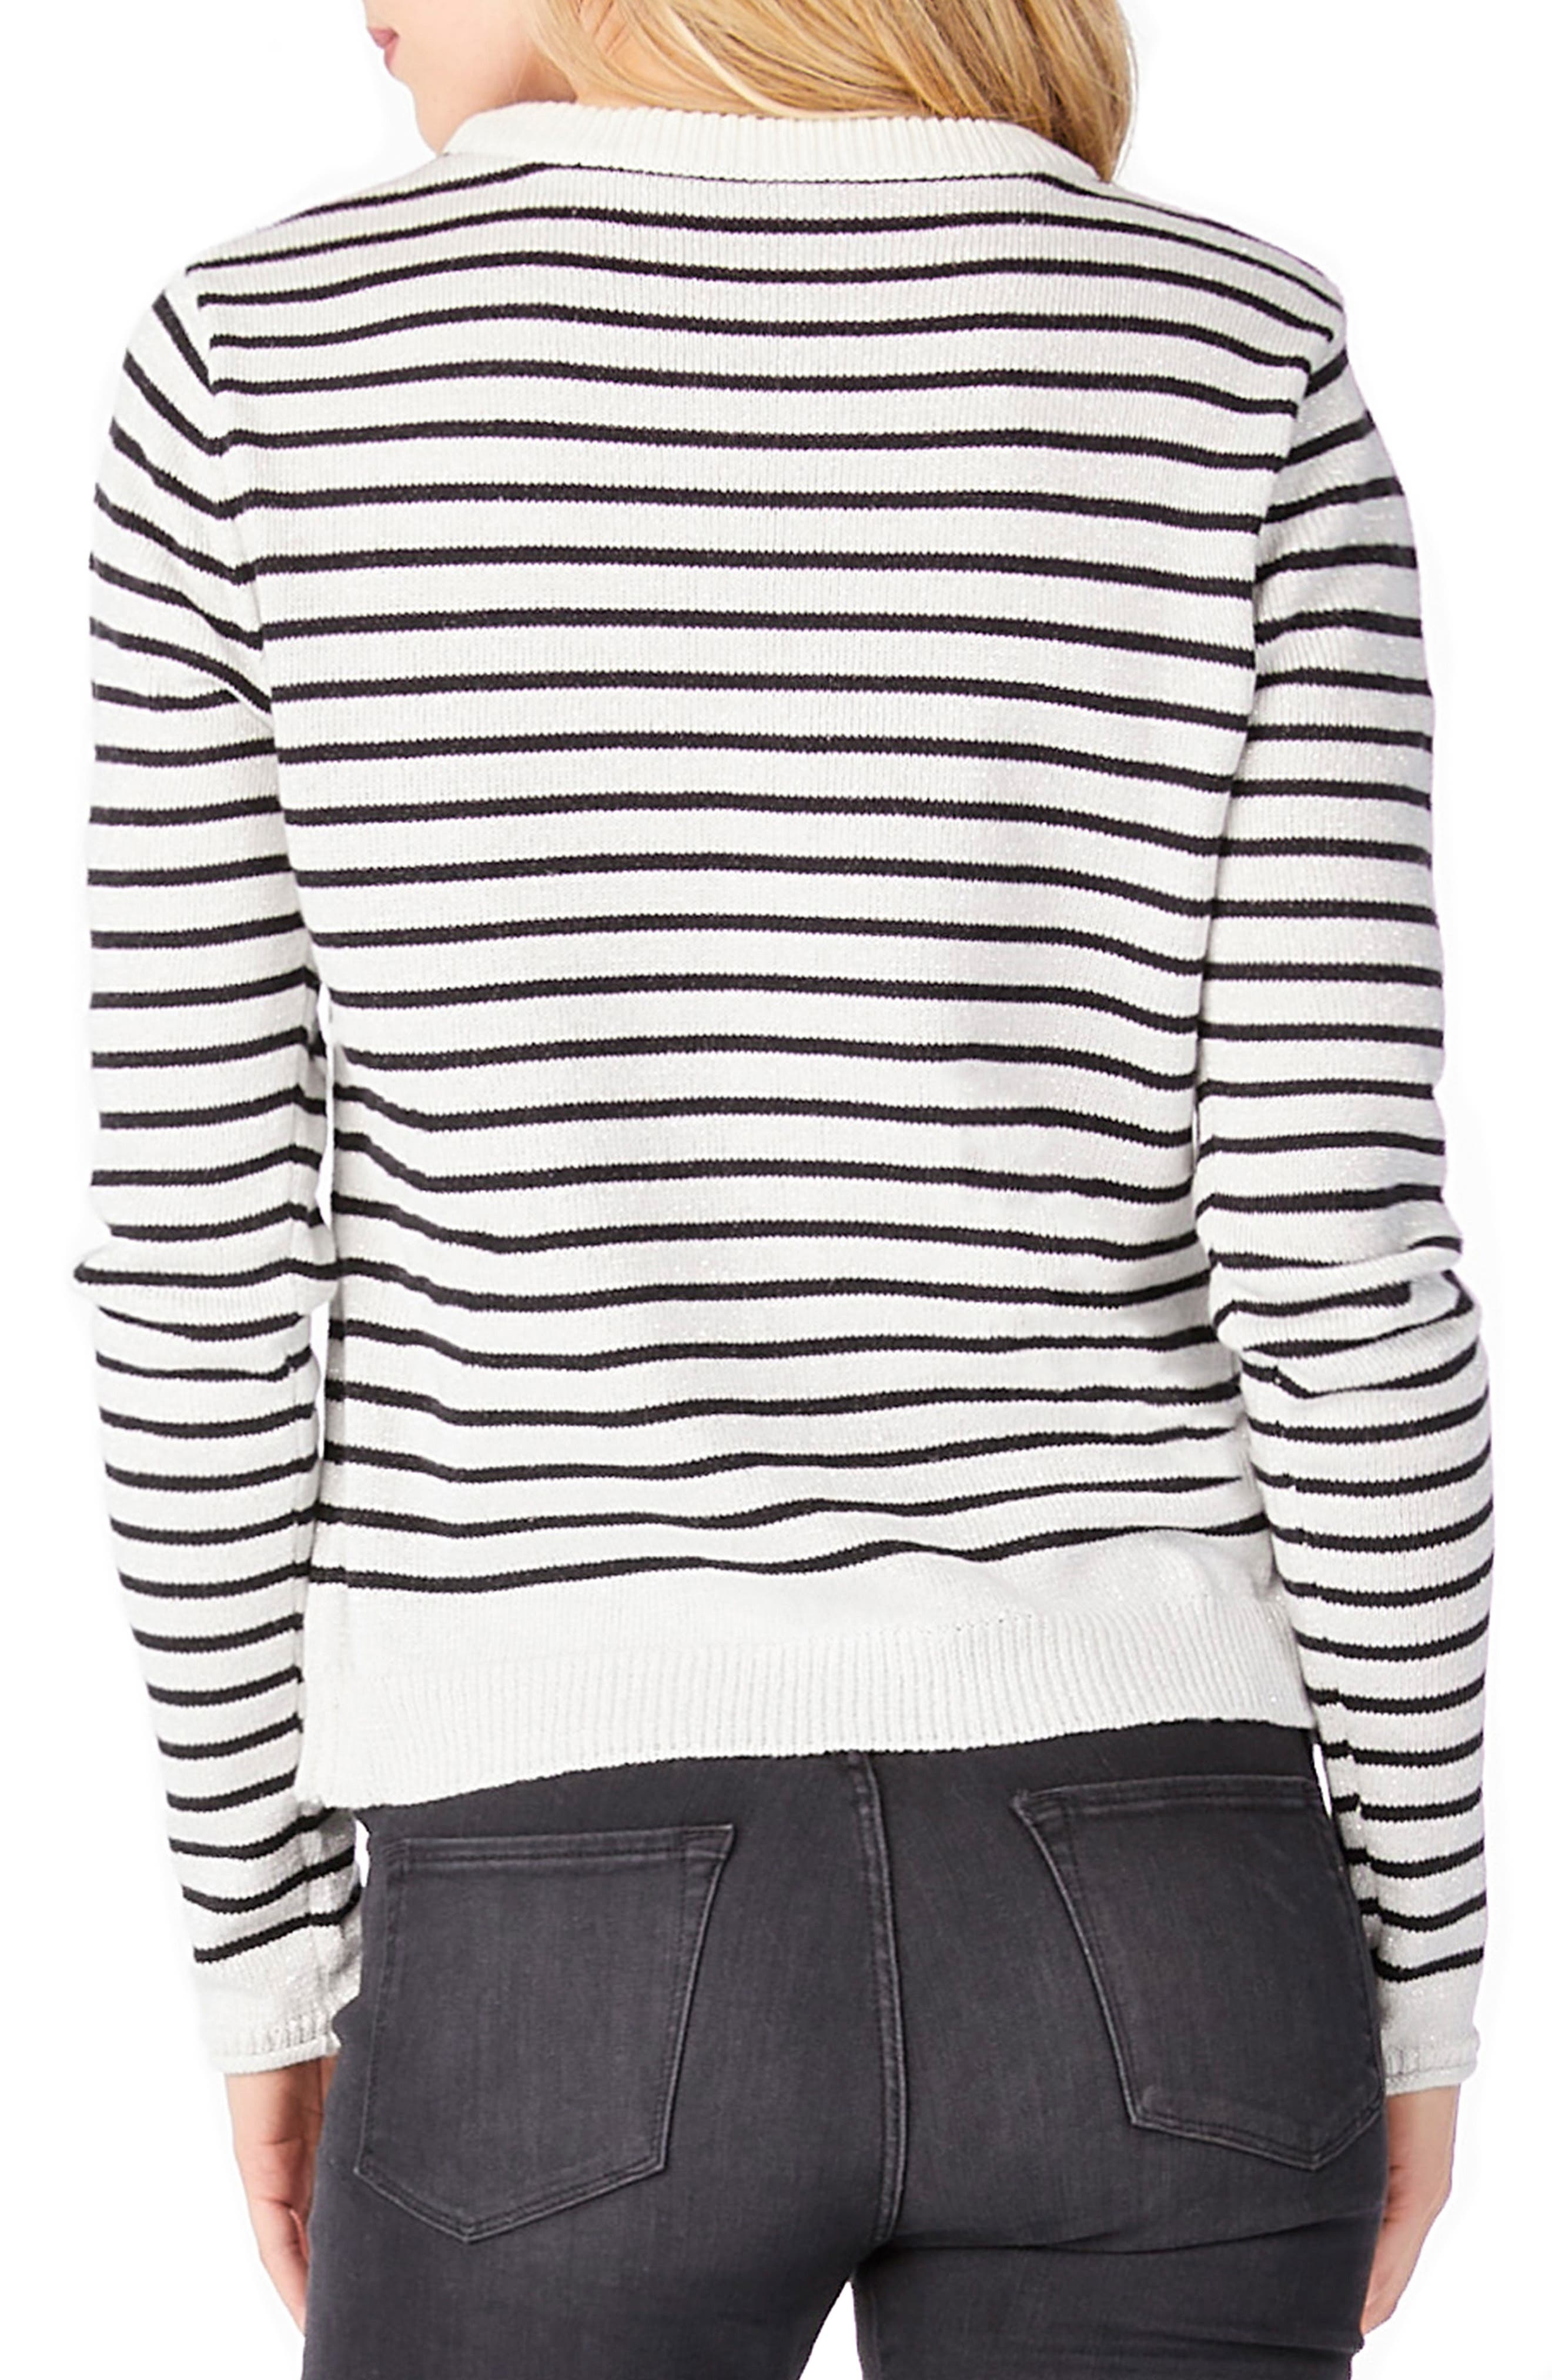 Stripe Patch Crewneck Sweater,                             Alternate thumbnail 2, color,                             White/ Black